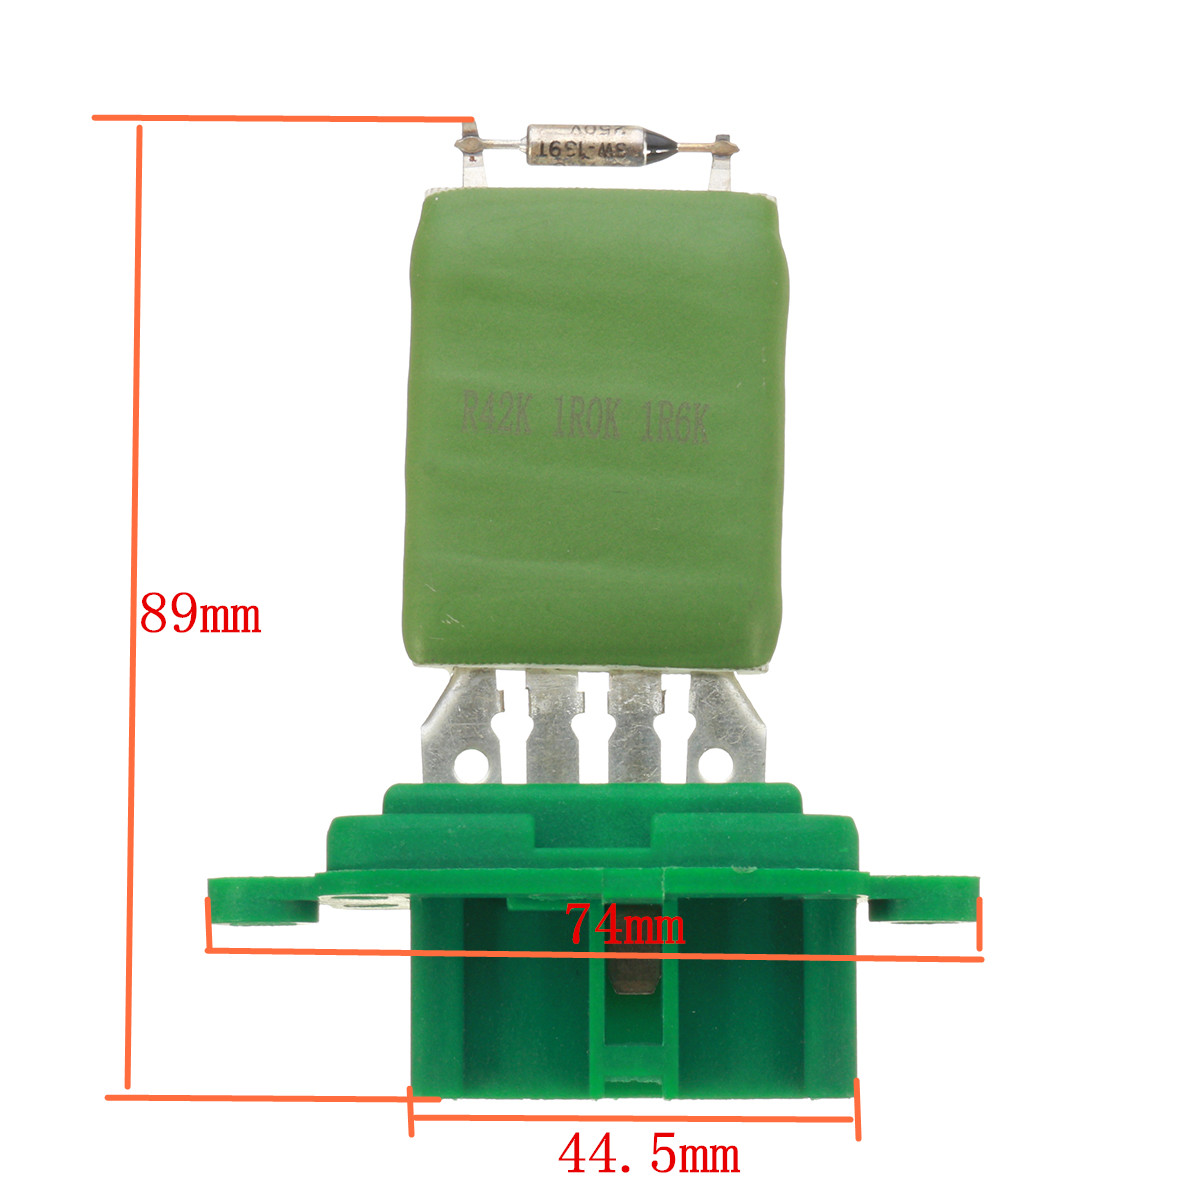 Heater Blower Motor Fan Resistor For Fiat 500 Panda Punto Seicento Fuse Box Guide Doblo Ducato 46721213 46723713 71732250 46722909 In Car Switches Relays From